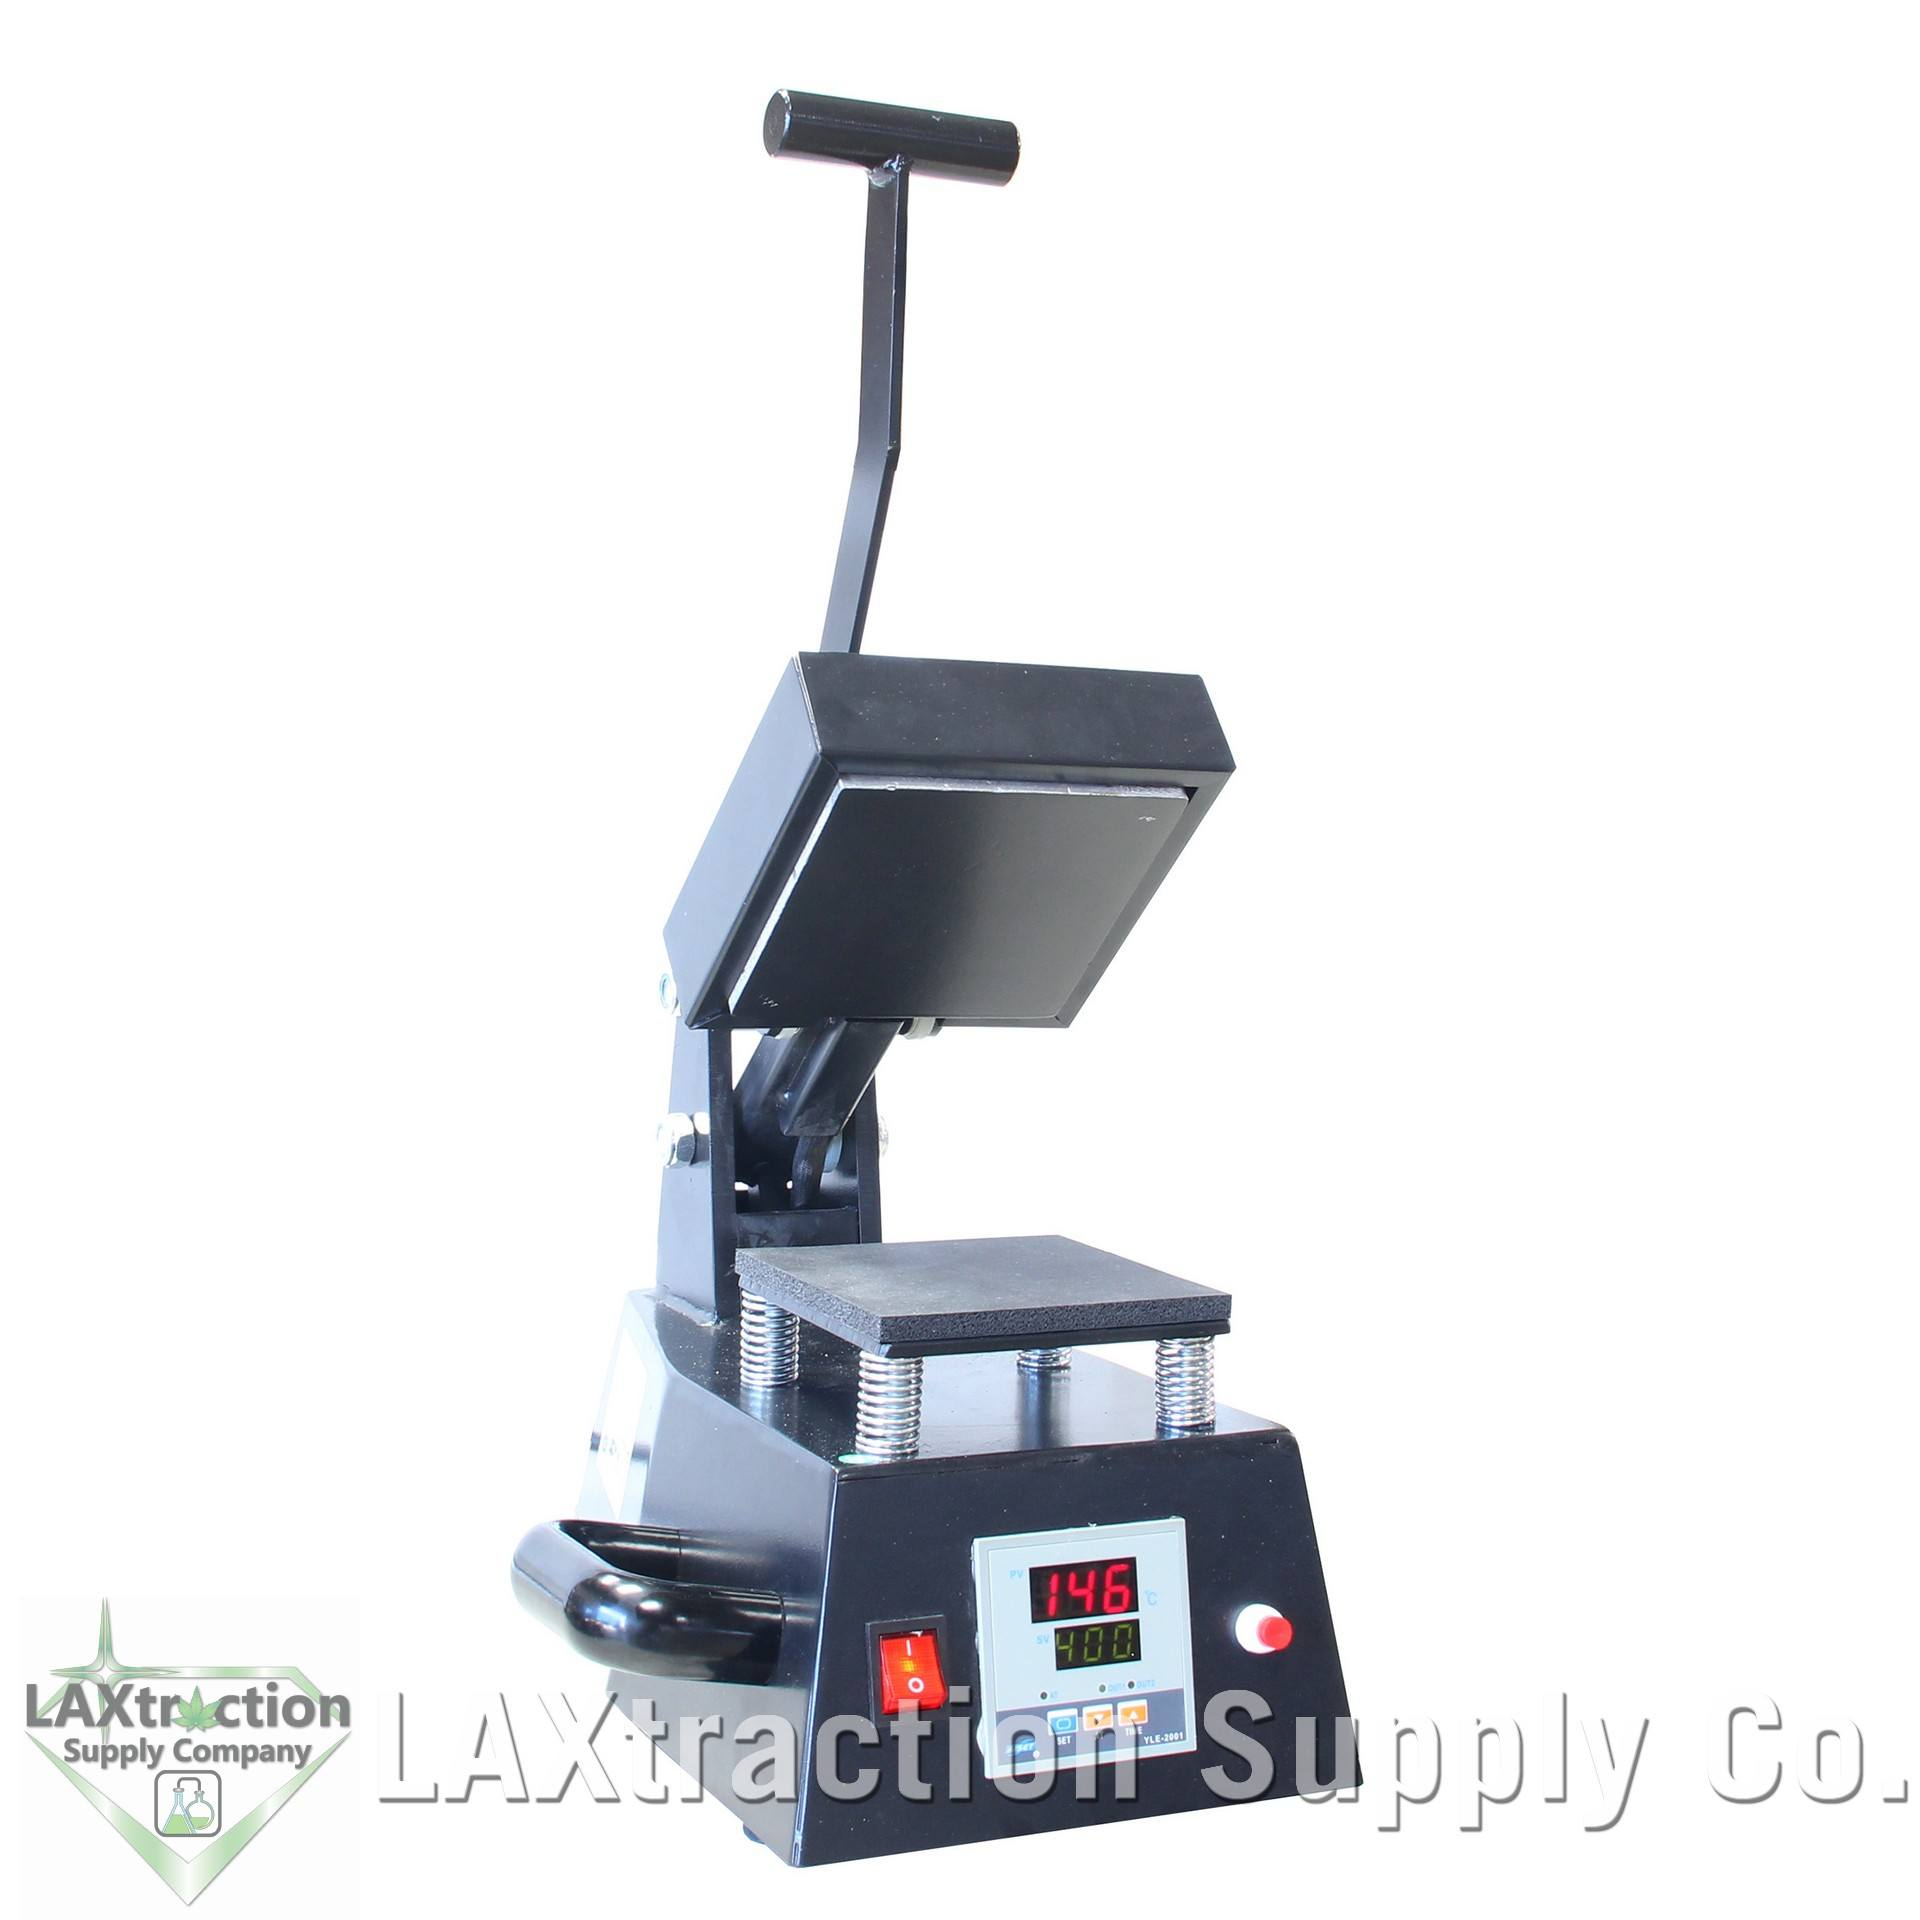 Sublimation Press Digital Heat Press 5x5 Rosin Sublimation Press Single Heater